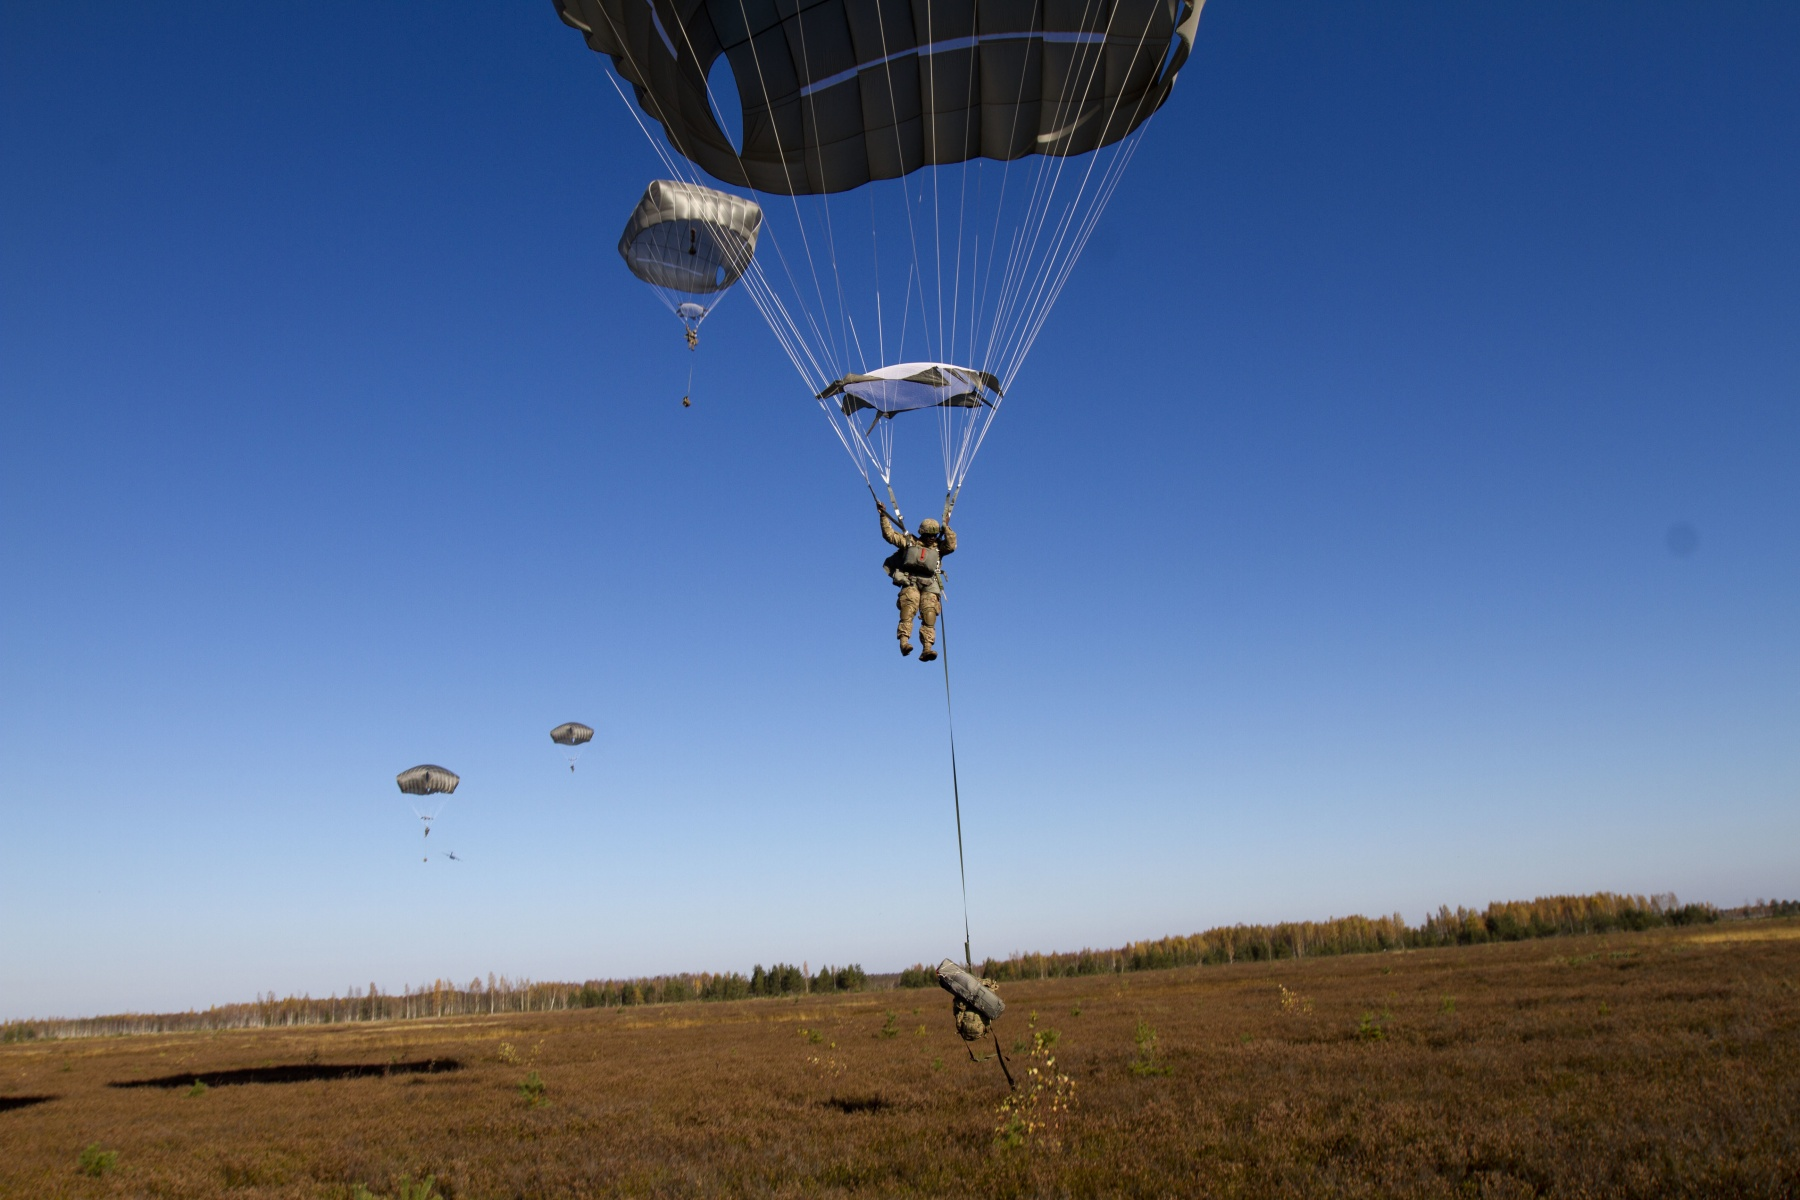 US Paratroopers participate in the opening ceremony of Silver Arrow exercise in Latvia